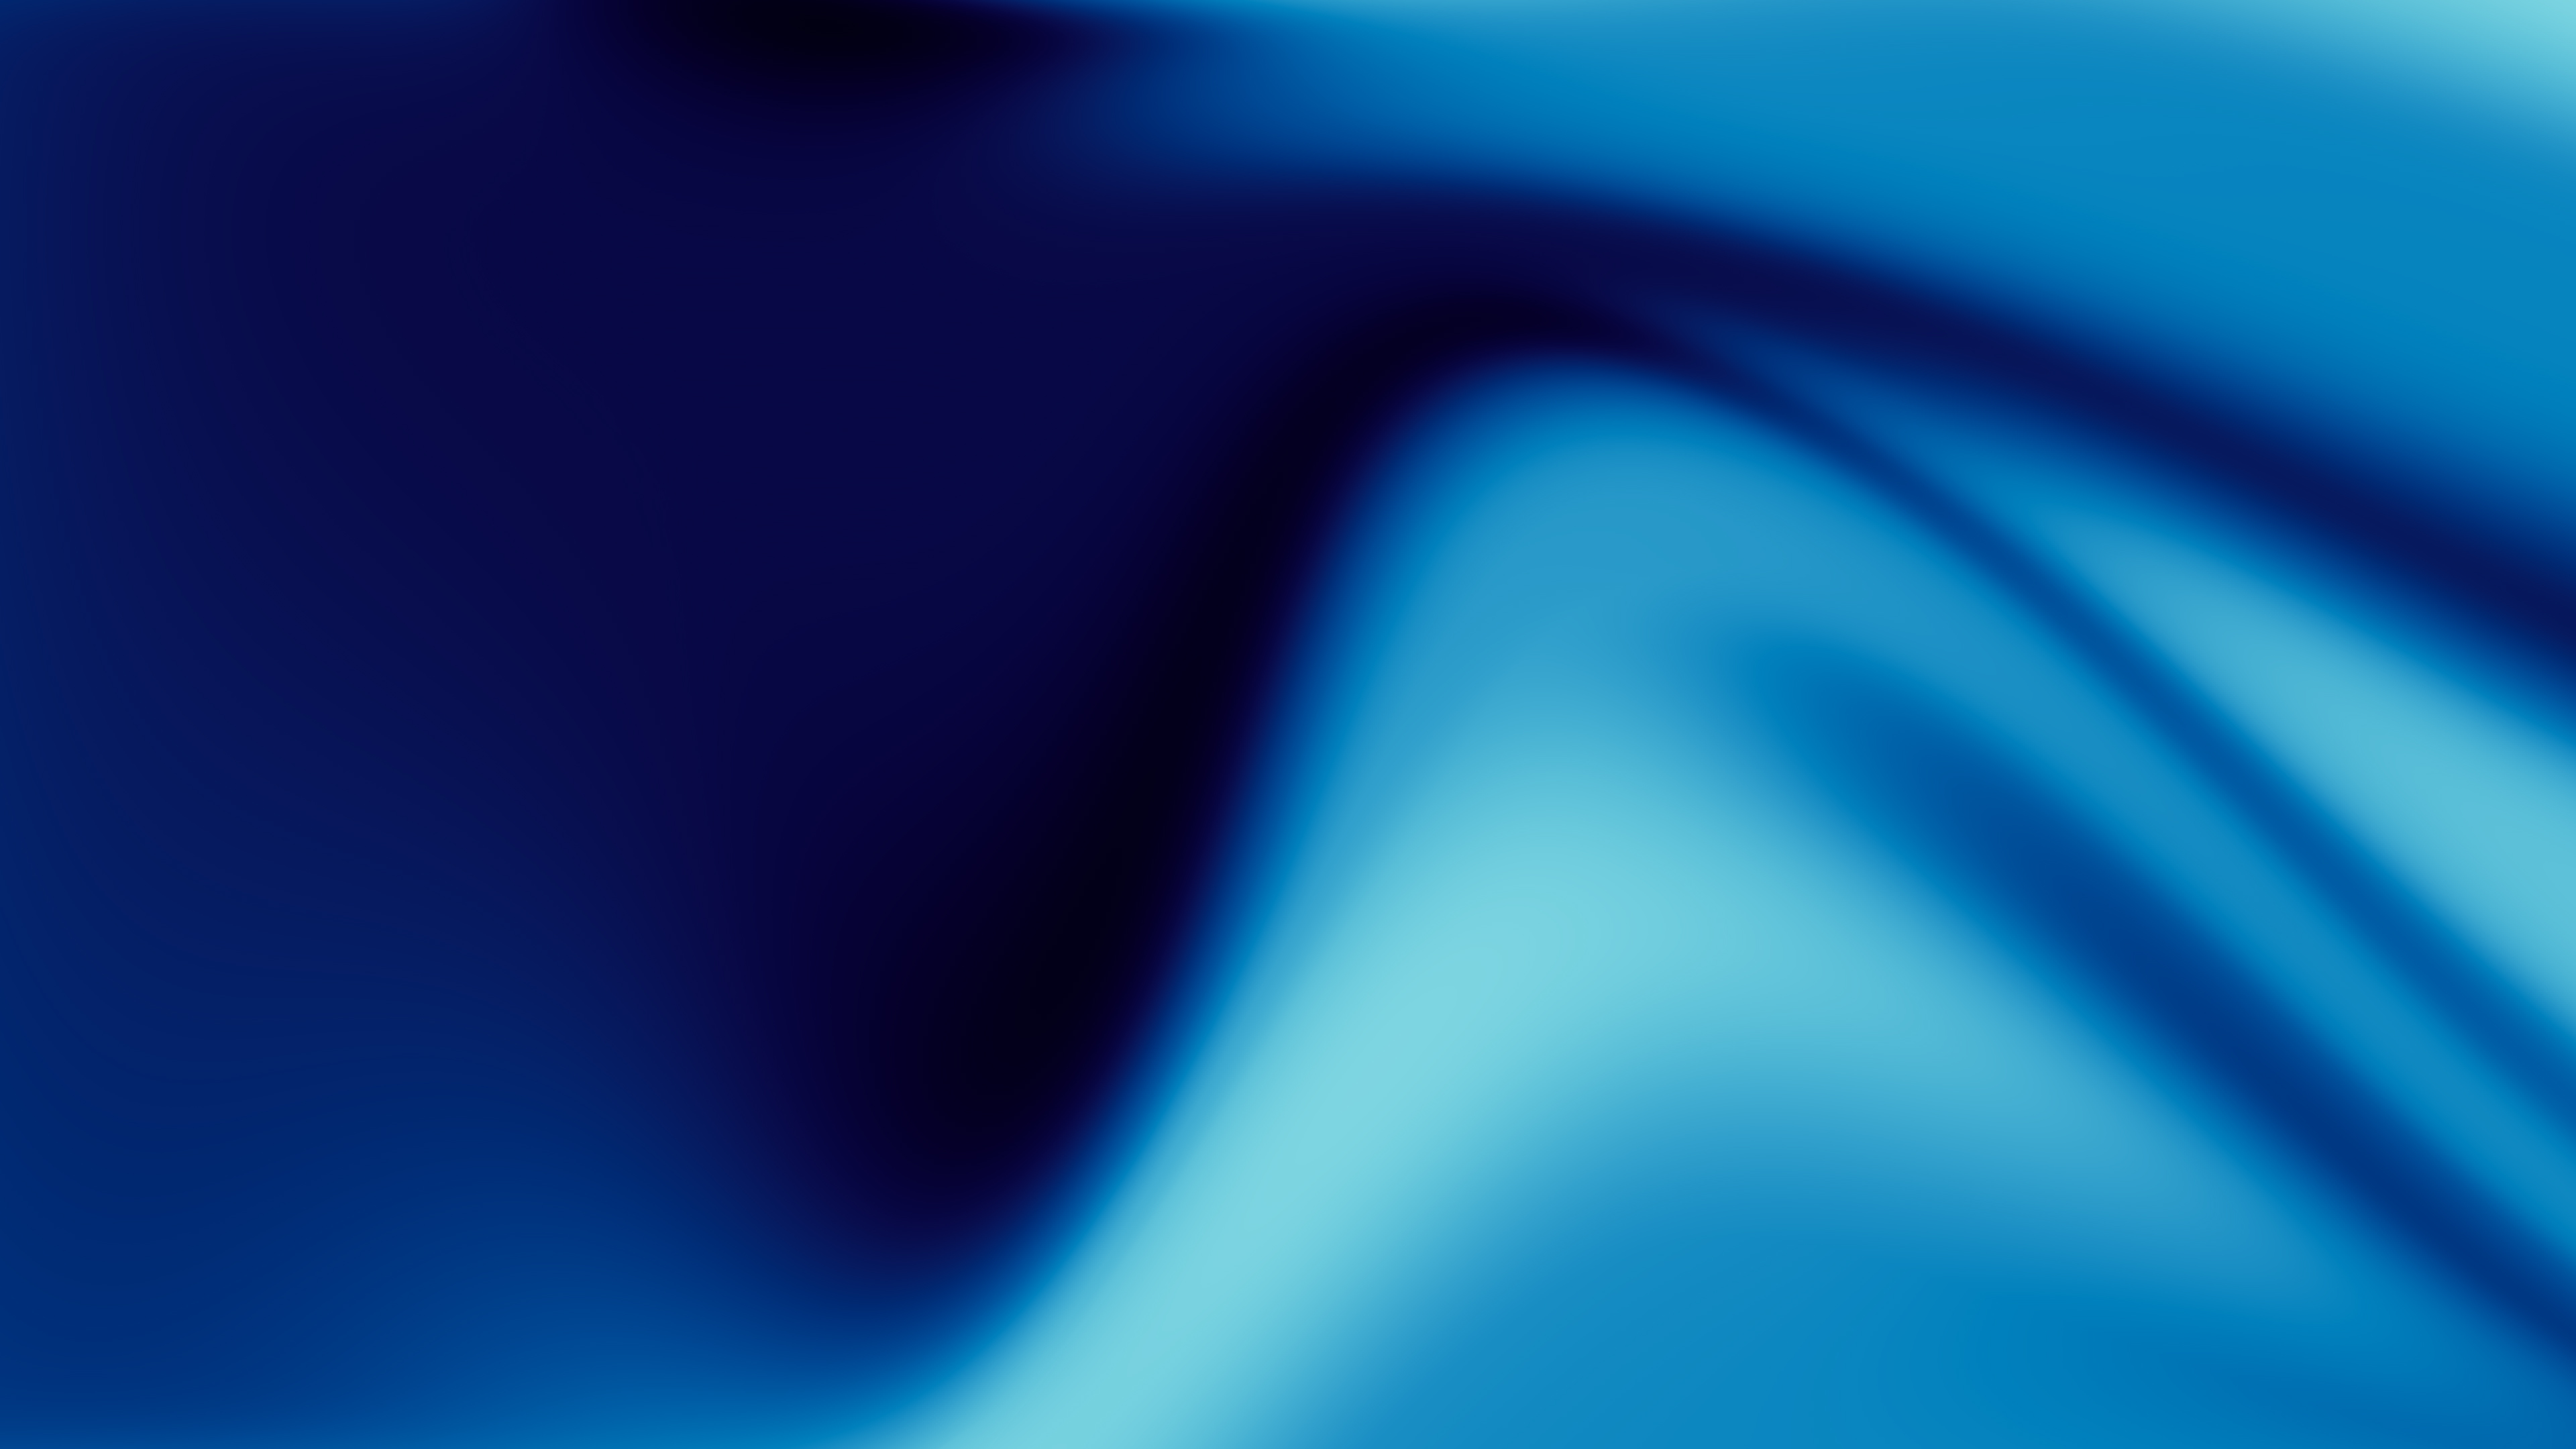 Blue Abstract Gradient 4k, HD Abstract, 4k Wallpapers ...